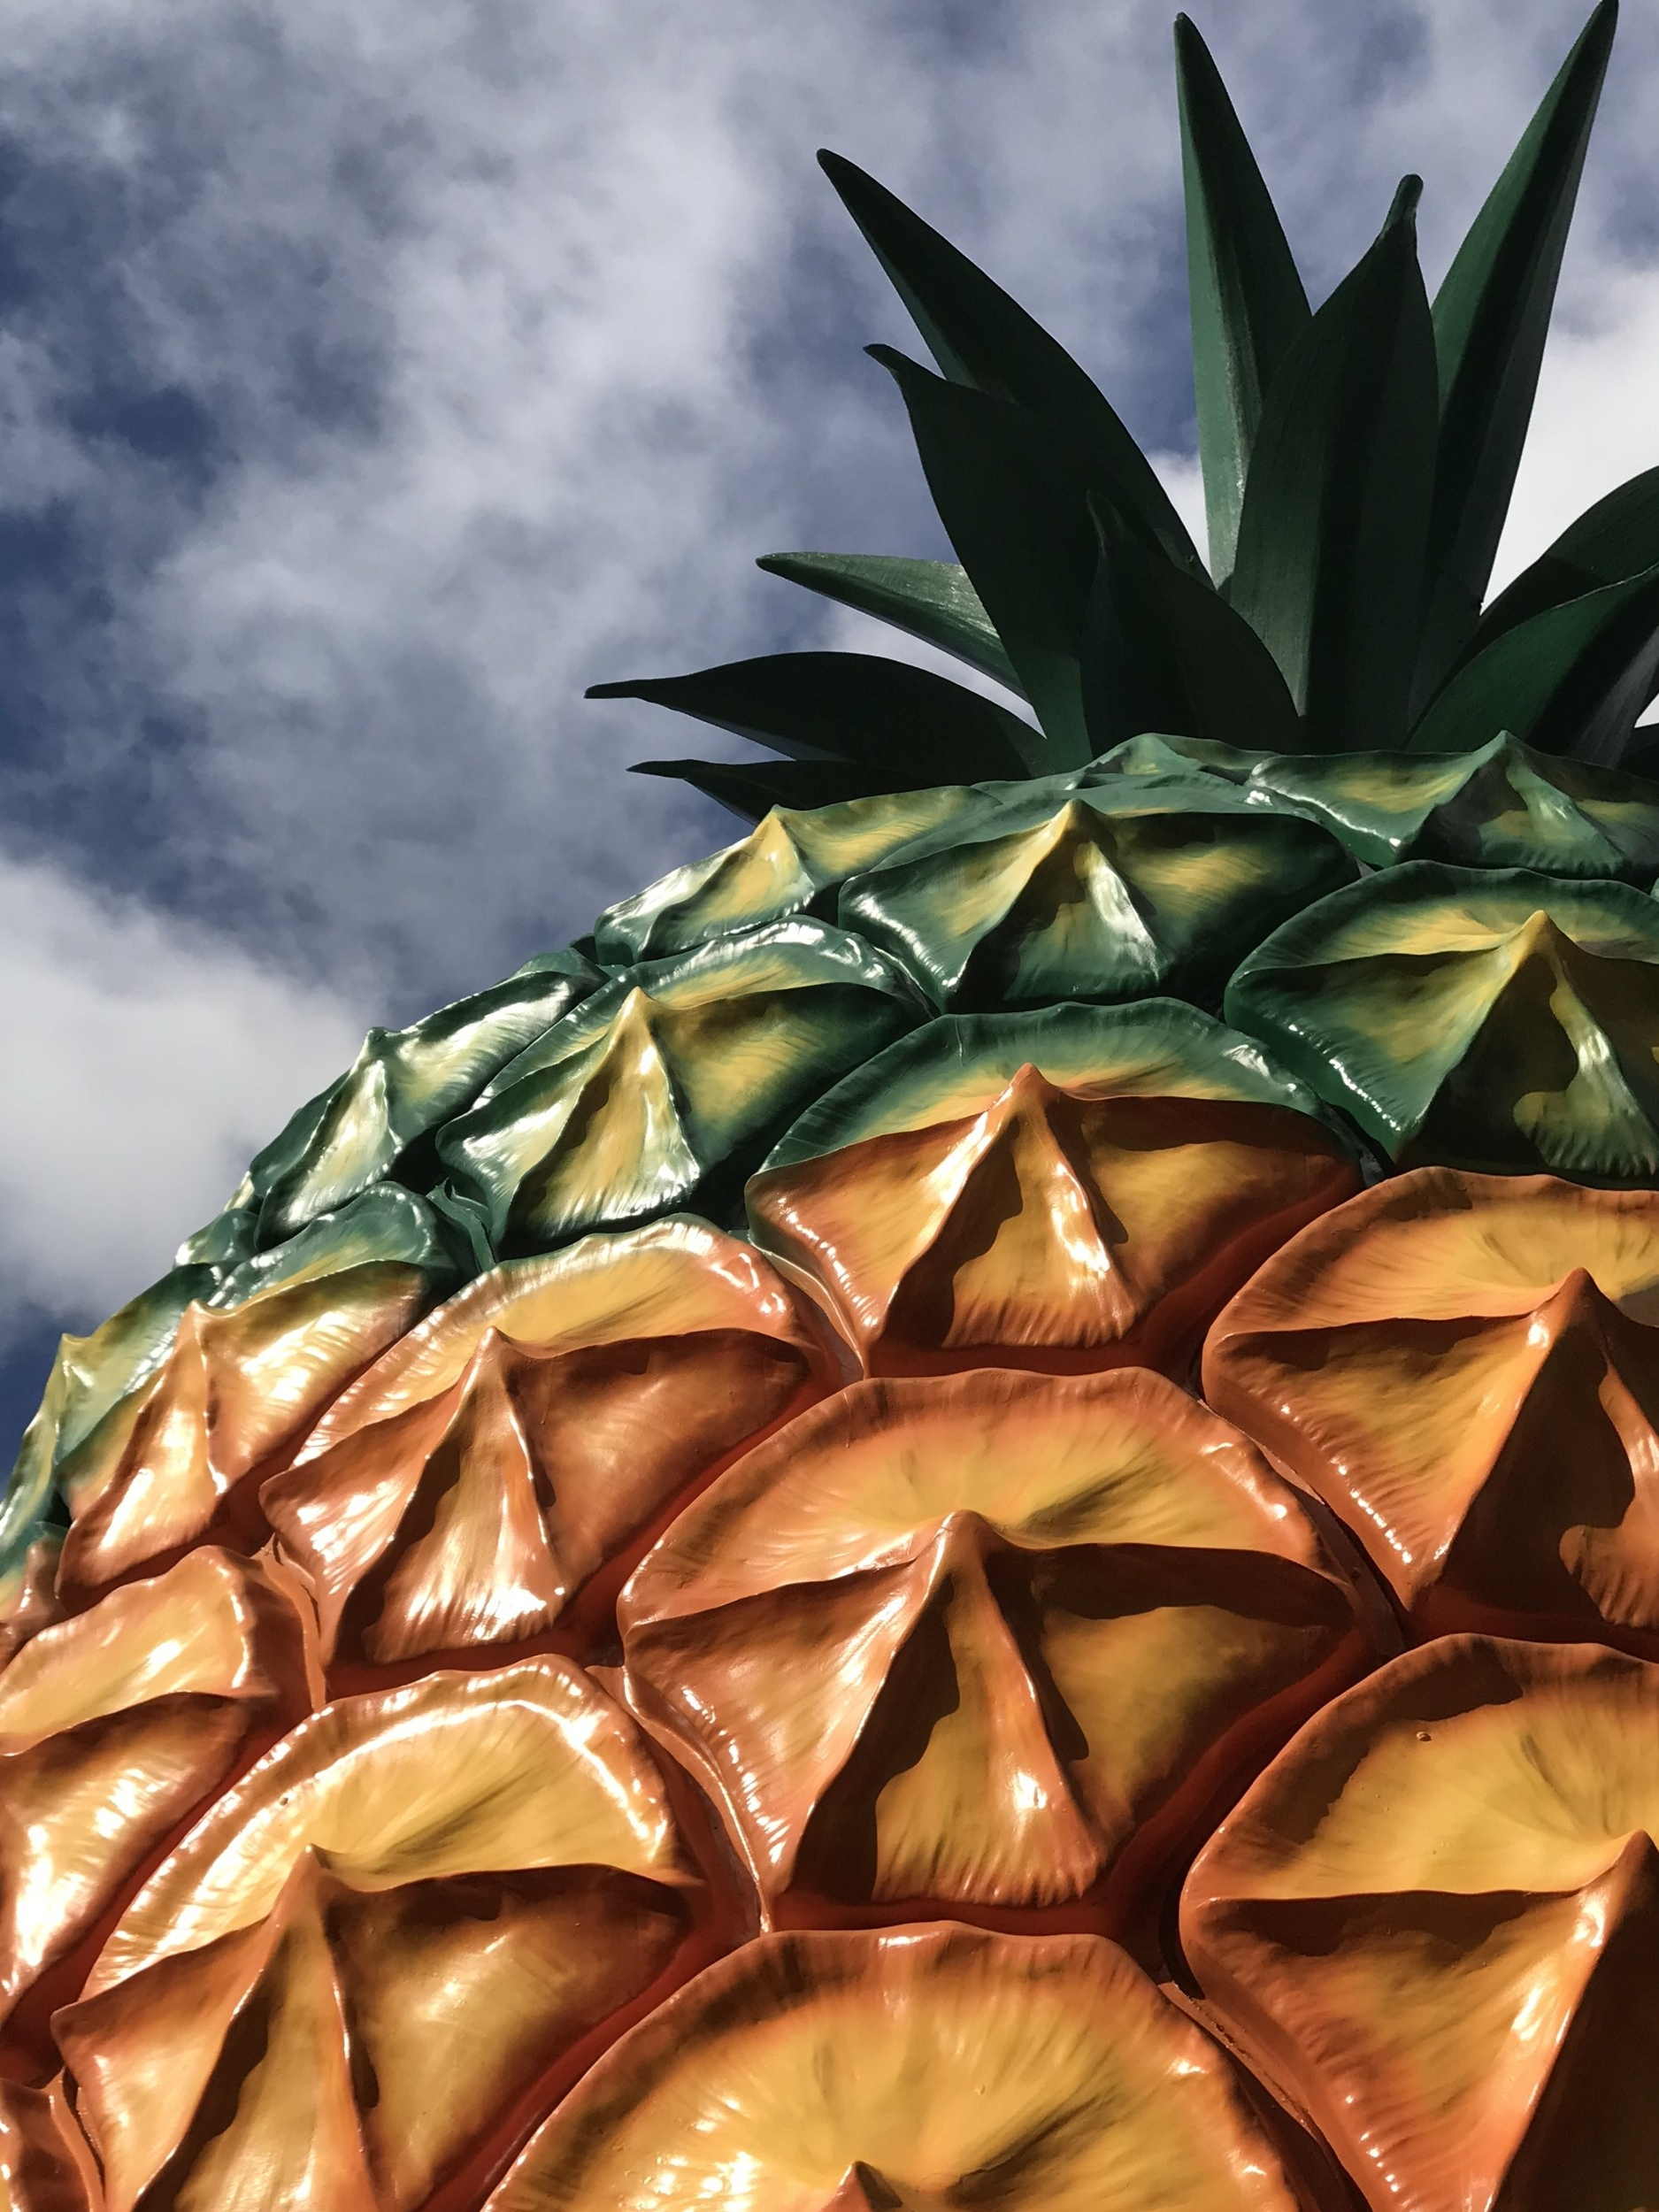 """The Big Pineapple by Vicky Pattison of Art of Crazy.  Judges thought the """"Big Pineapple"""" demonstrated """"an impressively artistic and authentic use of colour on a local icon."""""""